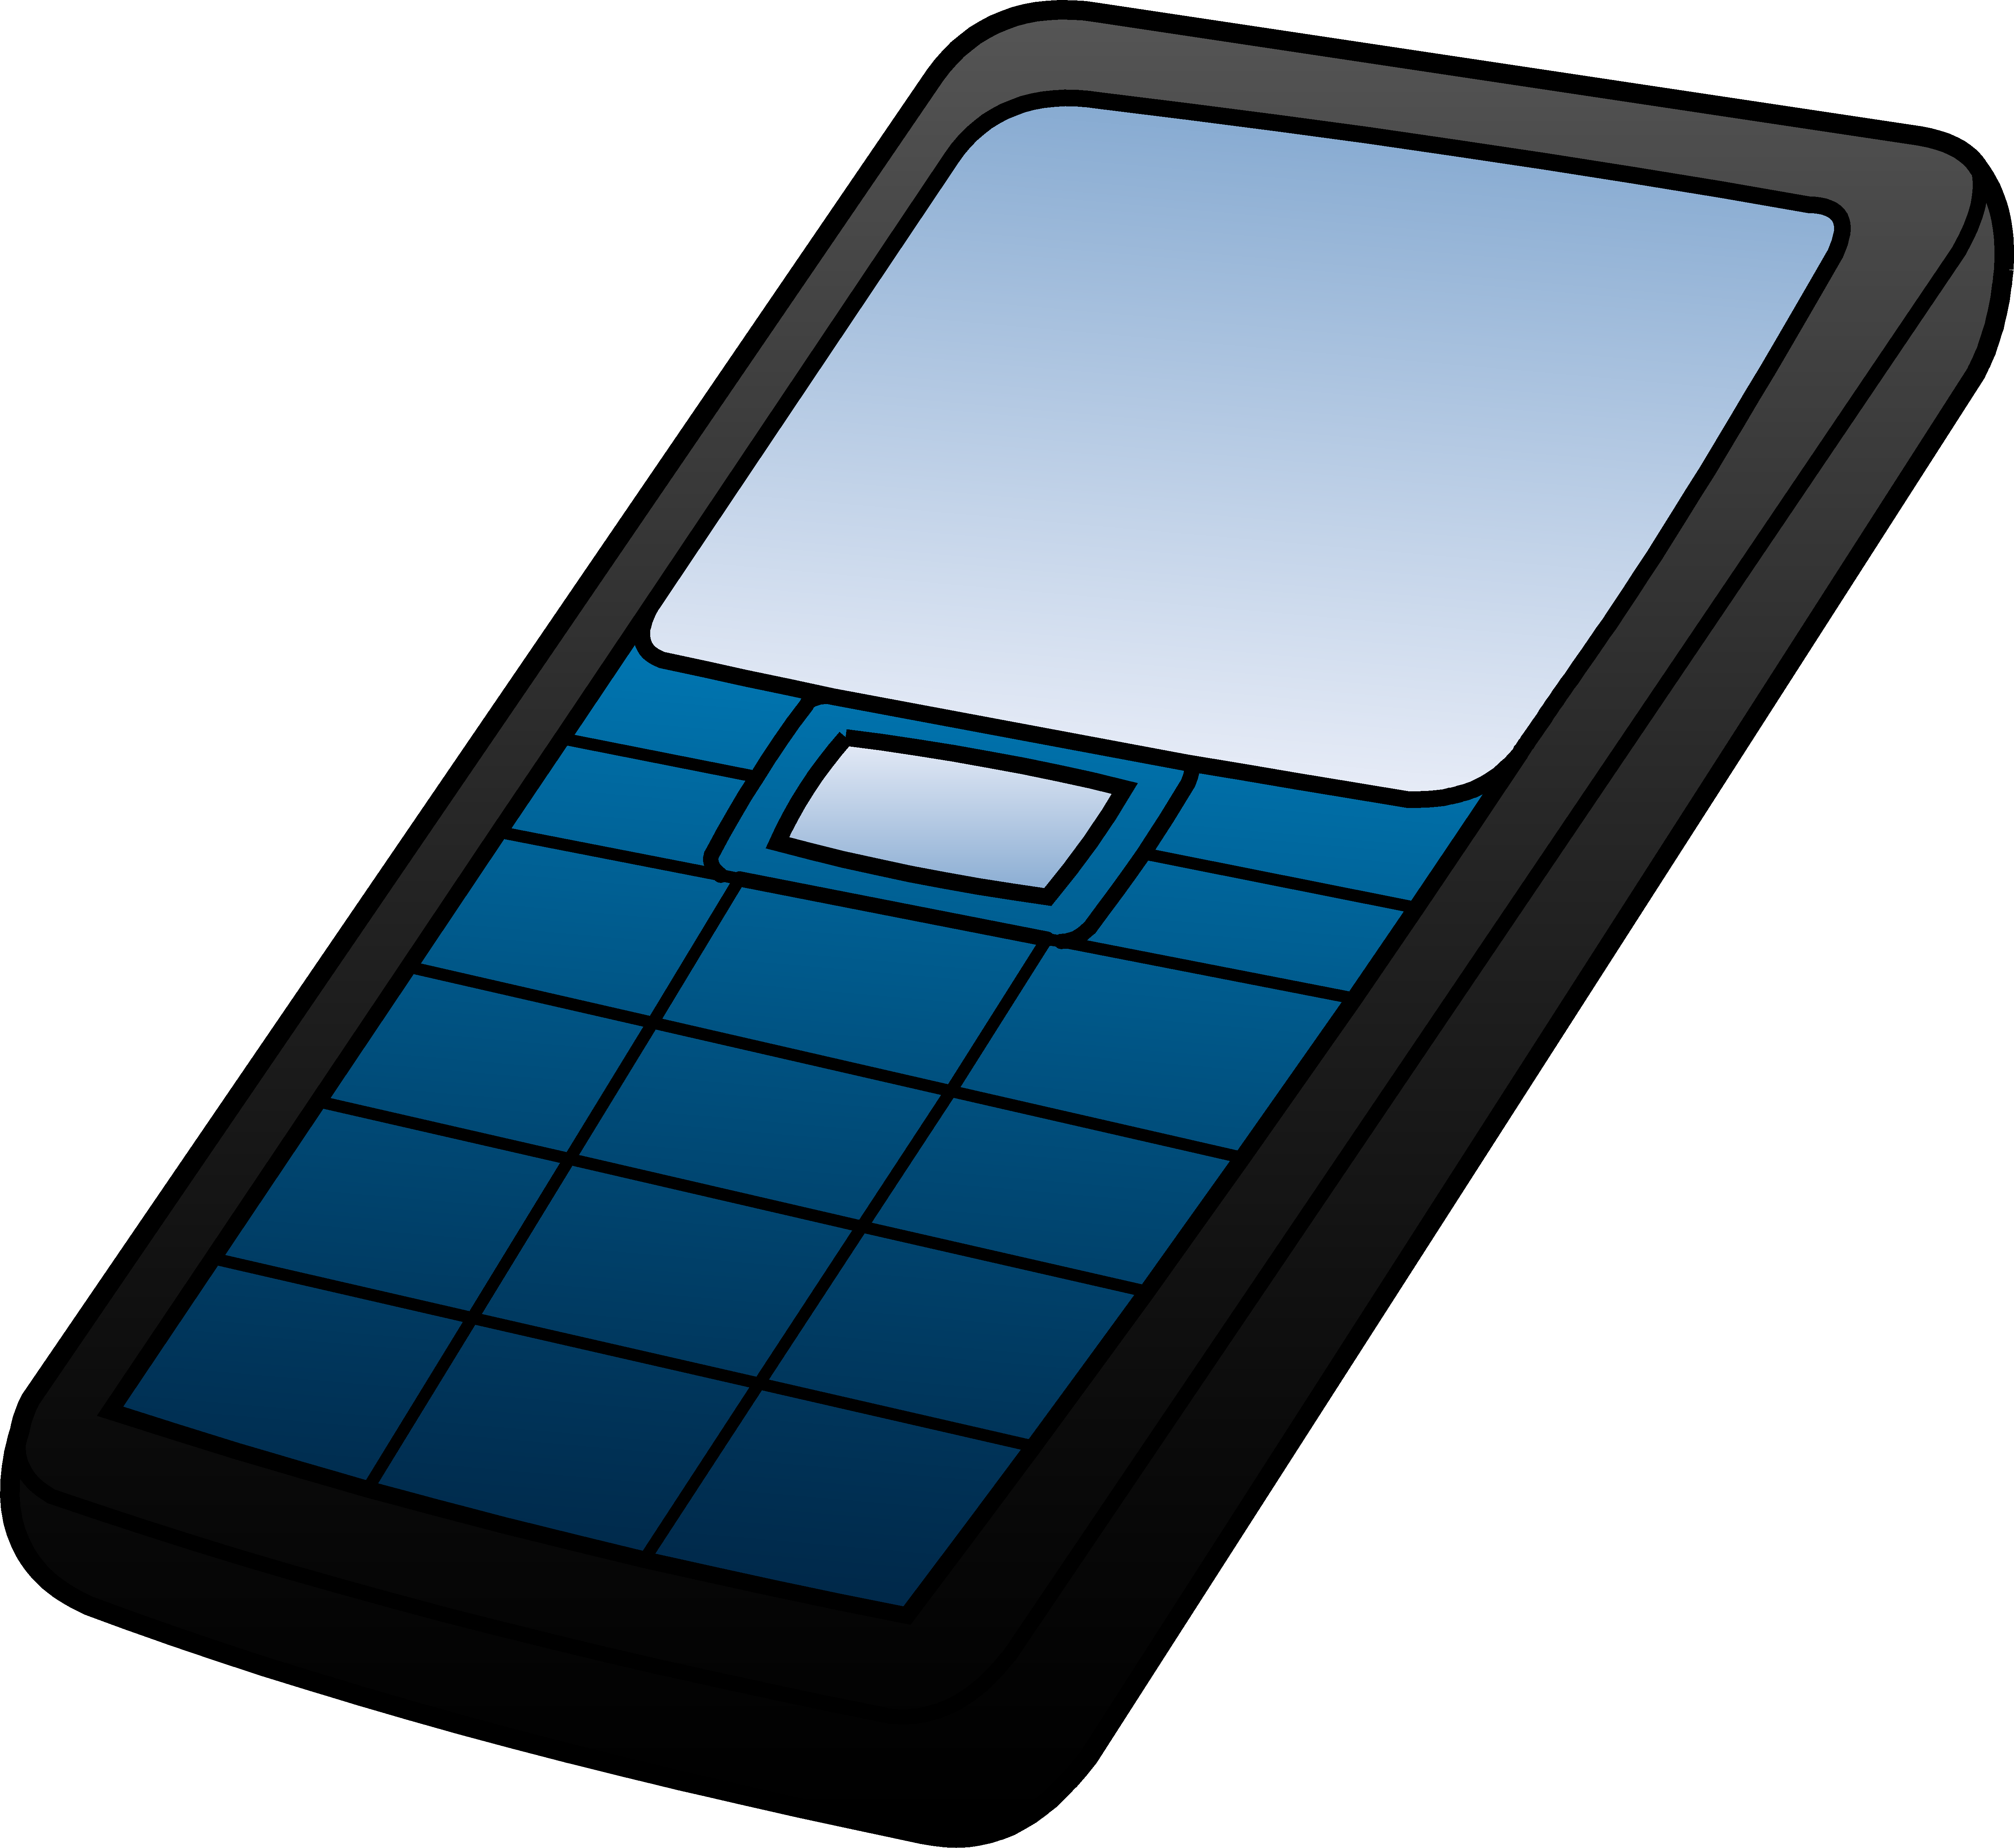 jpg free download New cell phone . Cellphone clipart